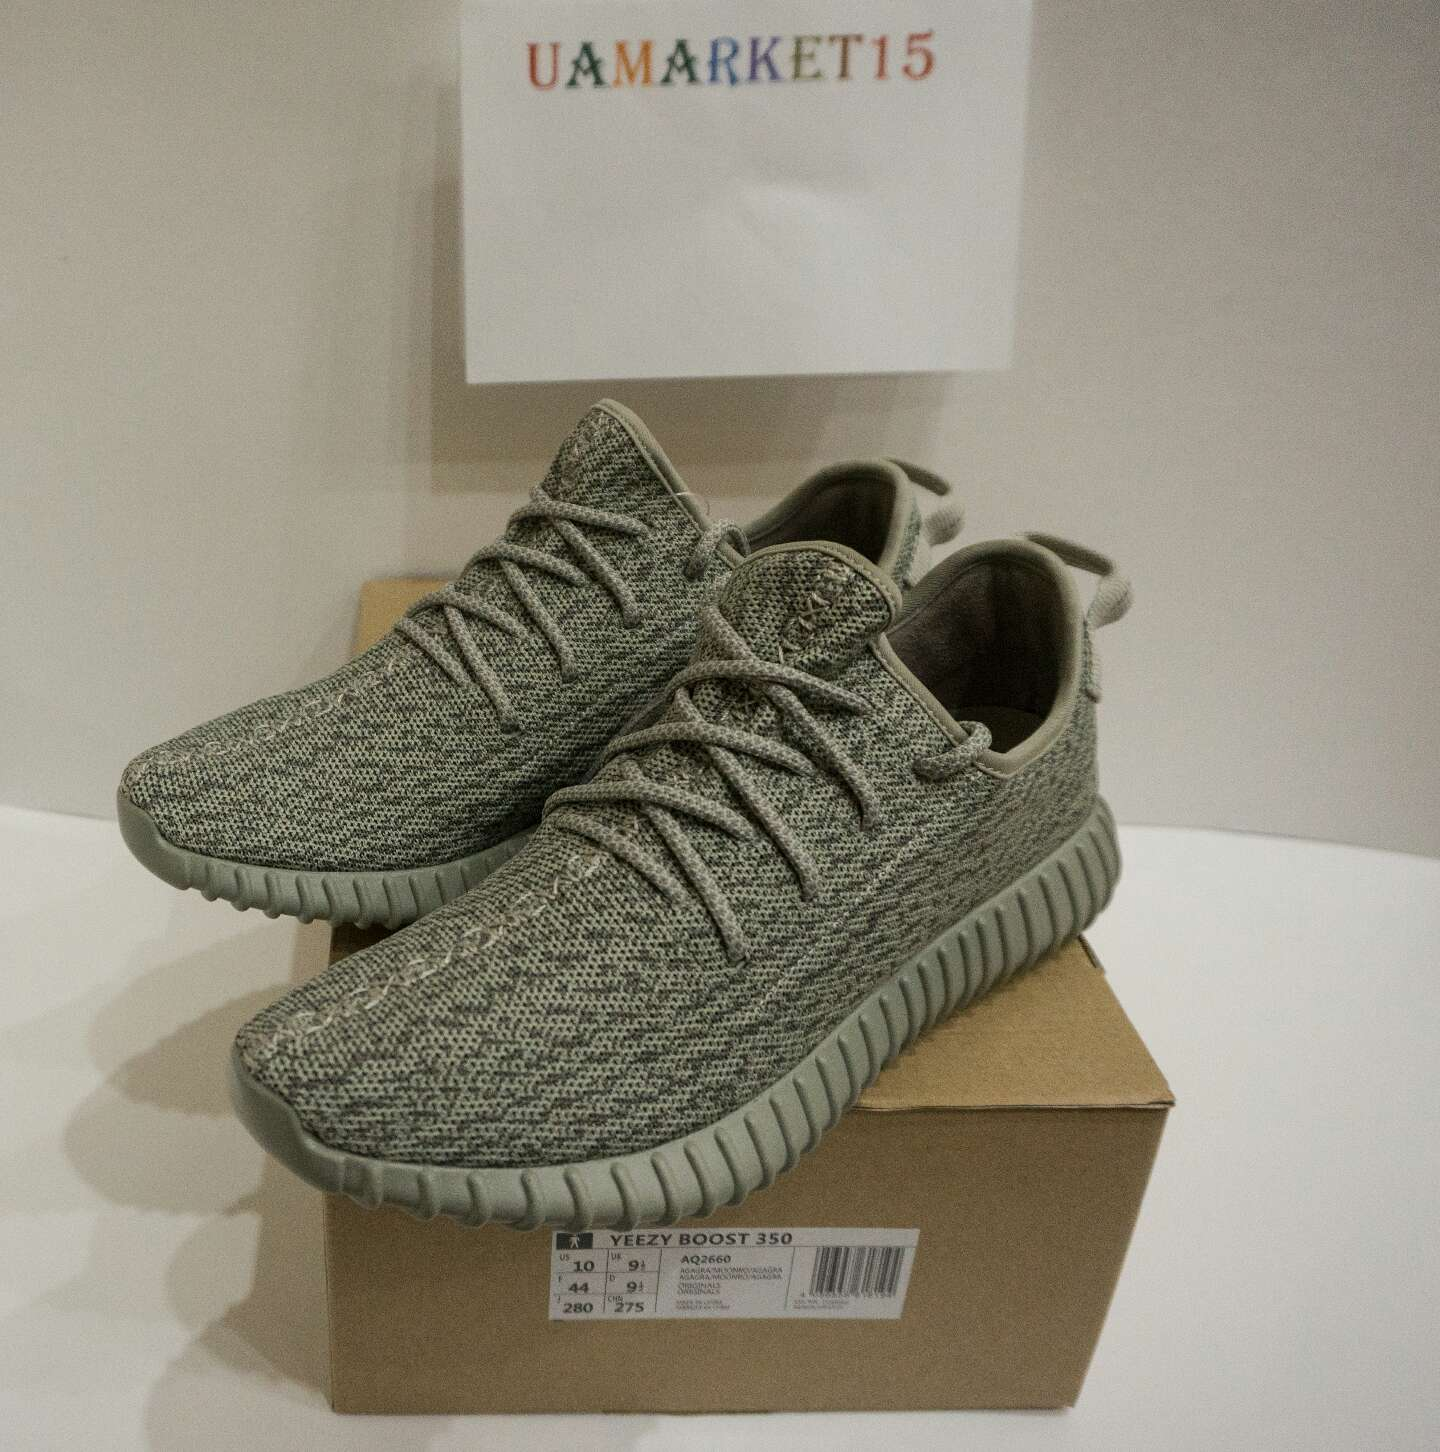 Yeezy Trainers for Sale, Cheap Yeezy 350 V2 Trainers Outlet